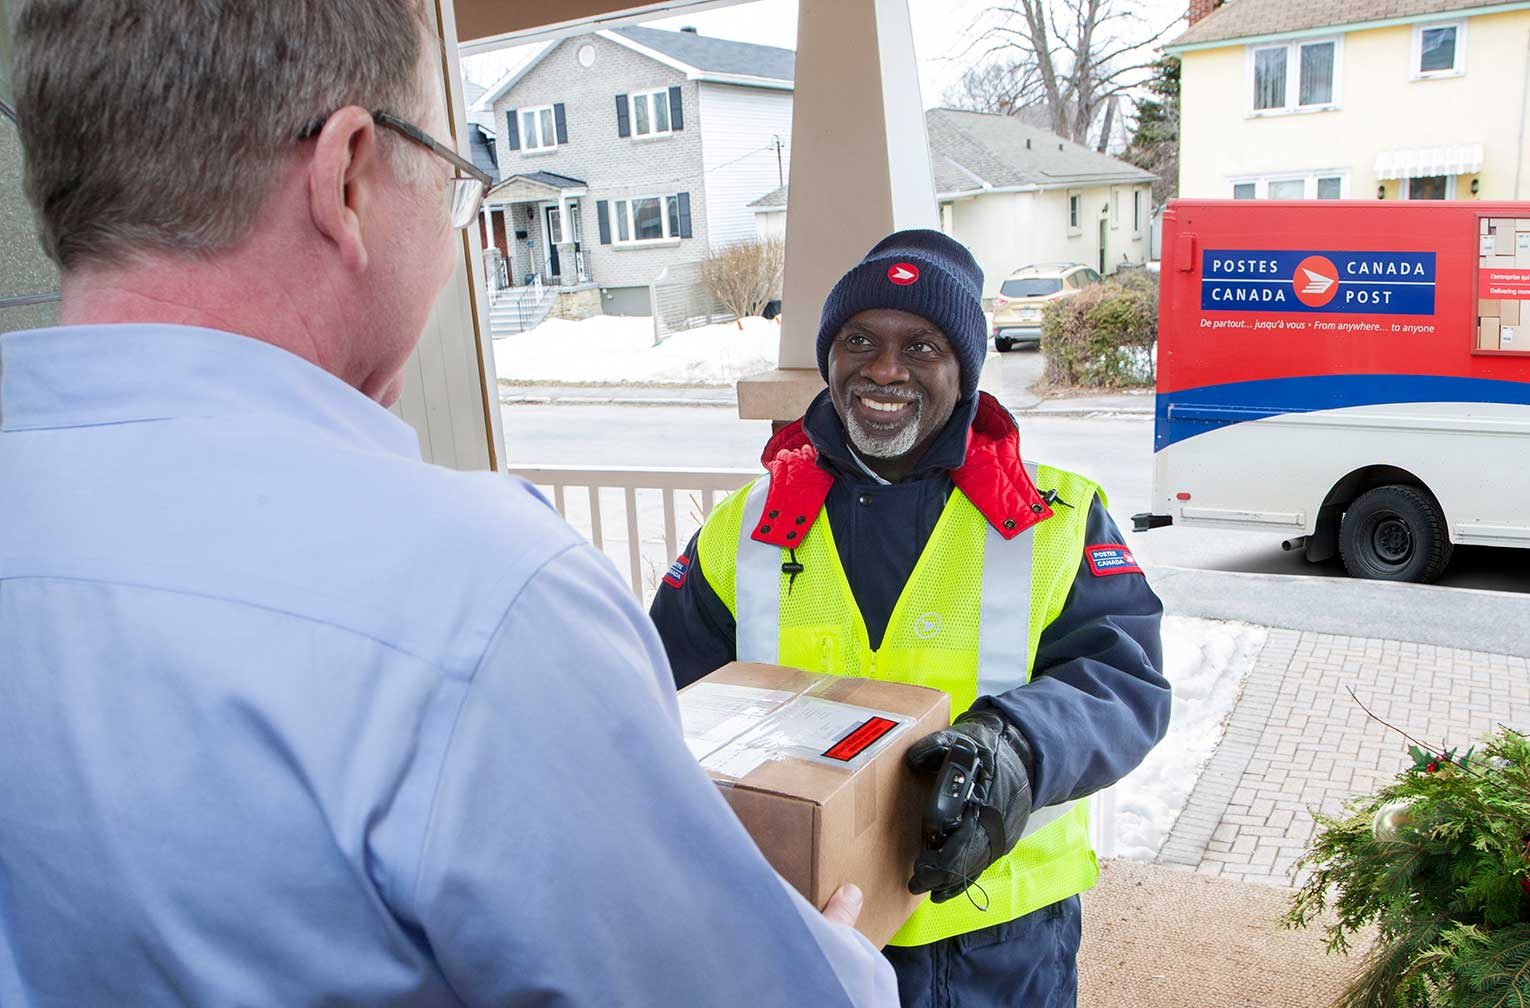 A Canada Post courier delivers a package to a man at his home.